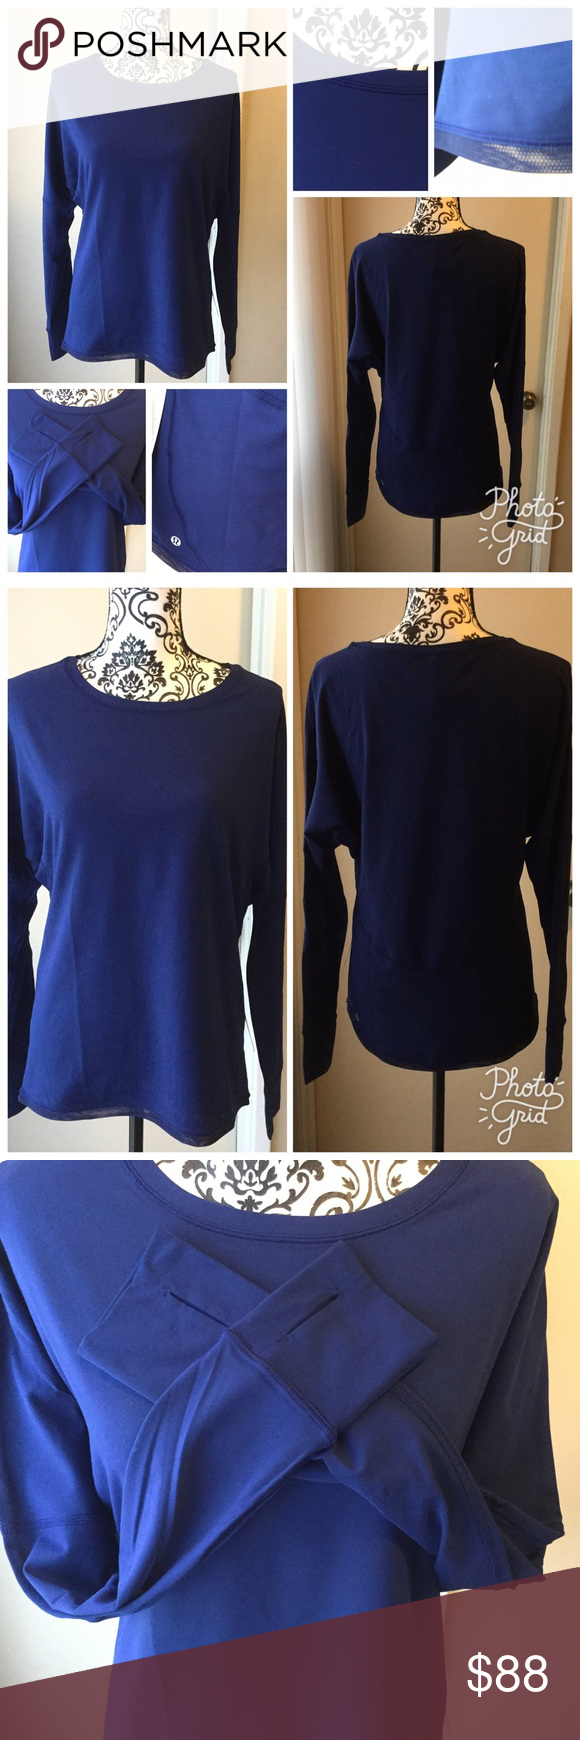 Lululemon 🍋 Gear up LS New with tags, Gear up long sleeve from lululemon. Hero blue color, mesh details in bottom. Super soft Rulu fabric, thumb holes. Priced higher then paid because of tax and fees. lululemon athletica Tops Tees - Long Sleeve